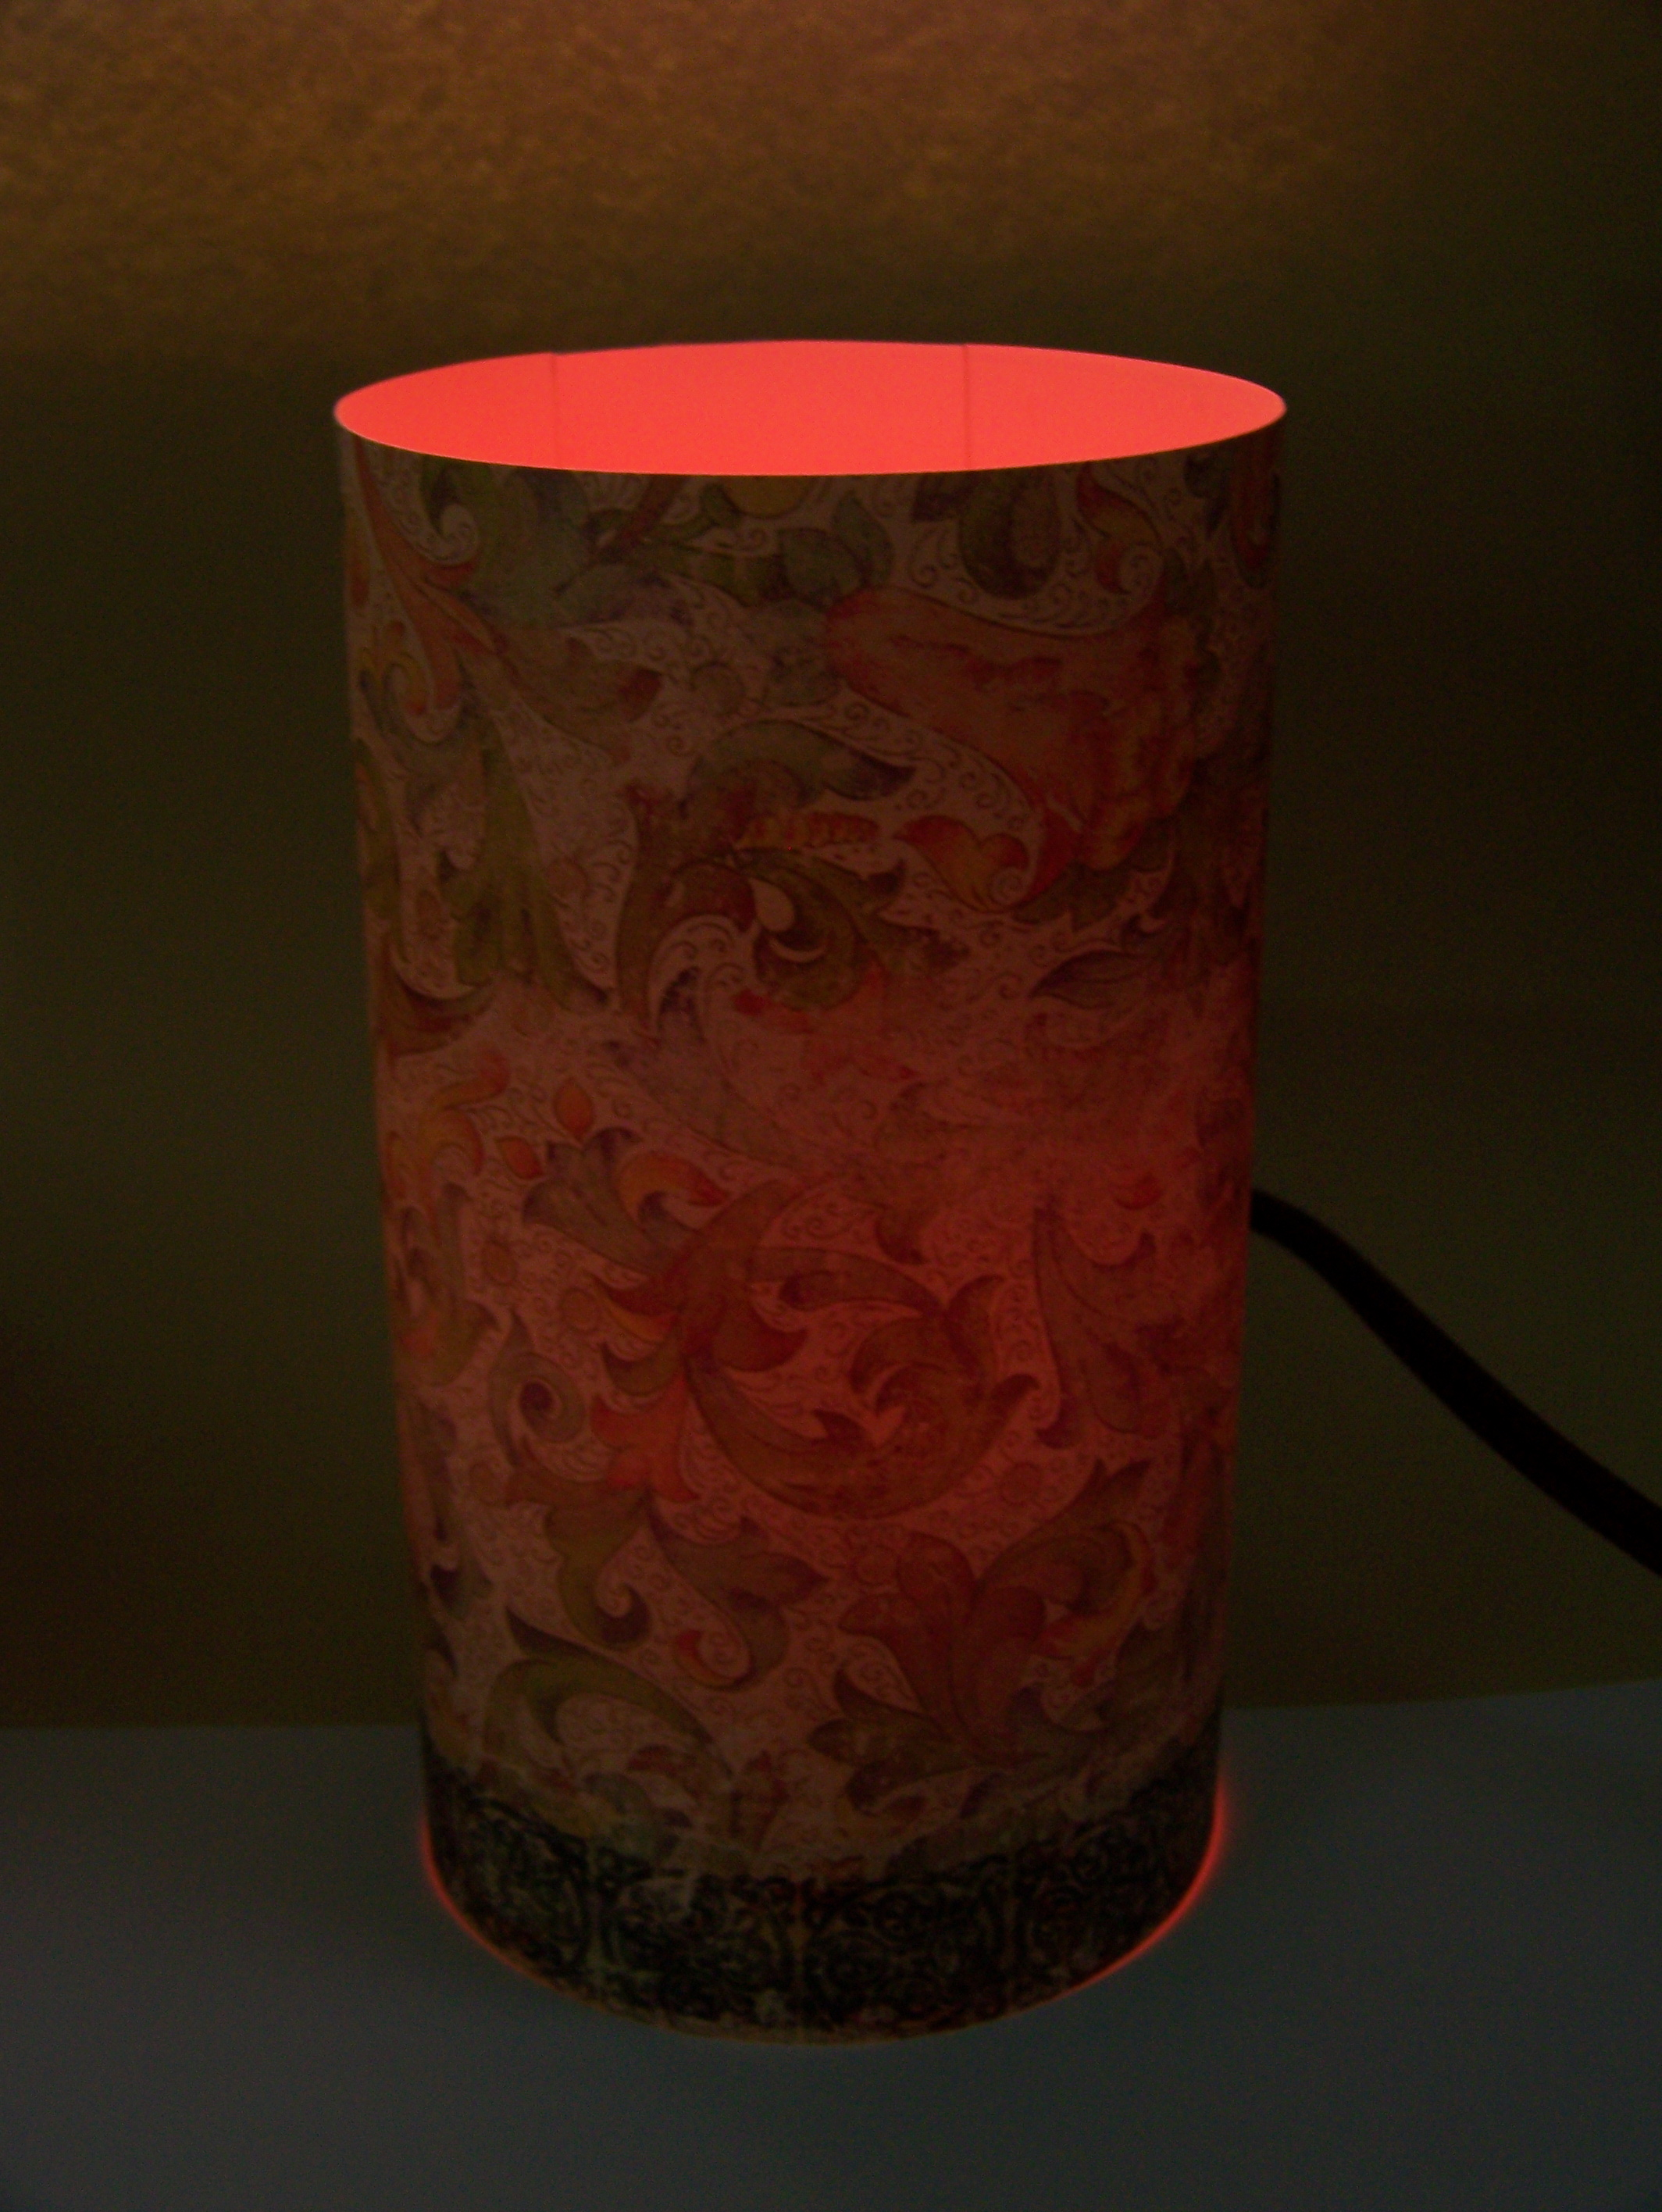 DIY Flicker Lamp or Electric Candle